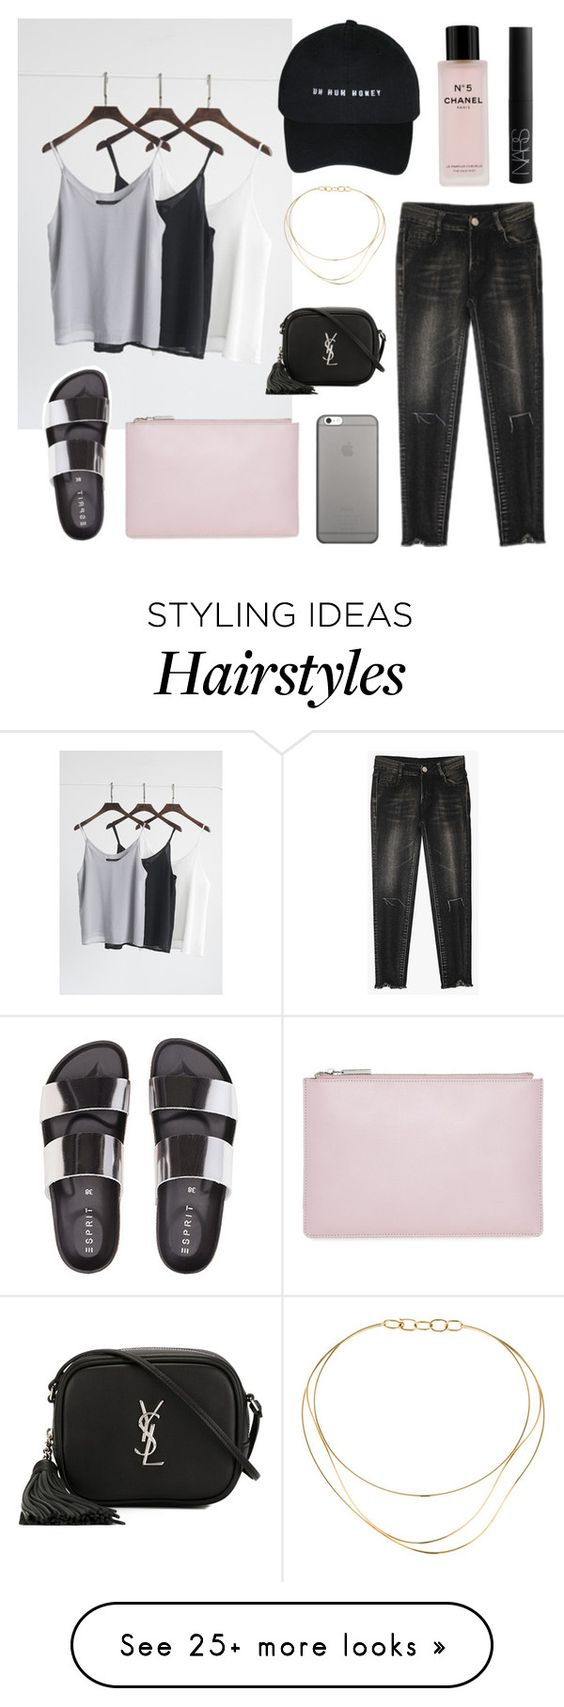 """misfits"" by jesicacecillia on Polyvore featuring Native Union, Whistles, Chanel, Tiffany & Co., Yves Saint Laurent and NARS Cosmetics"